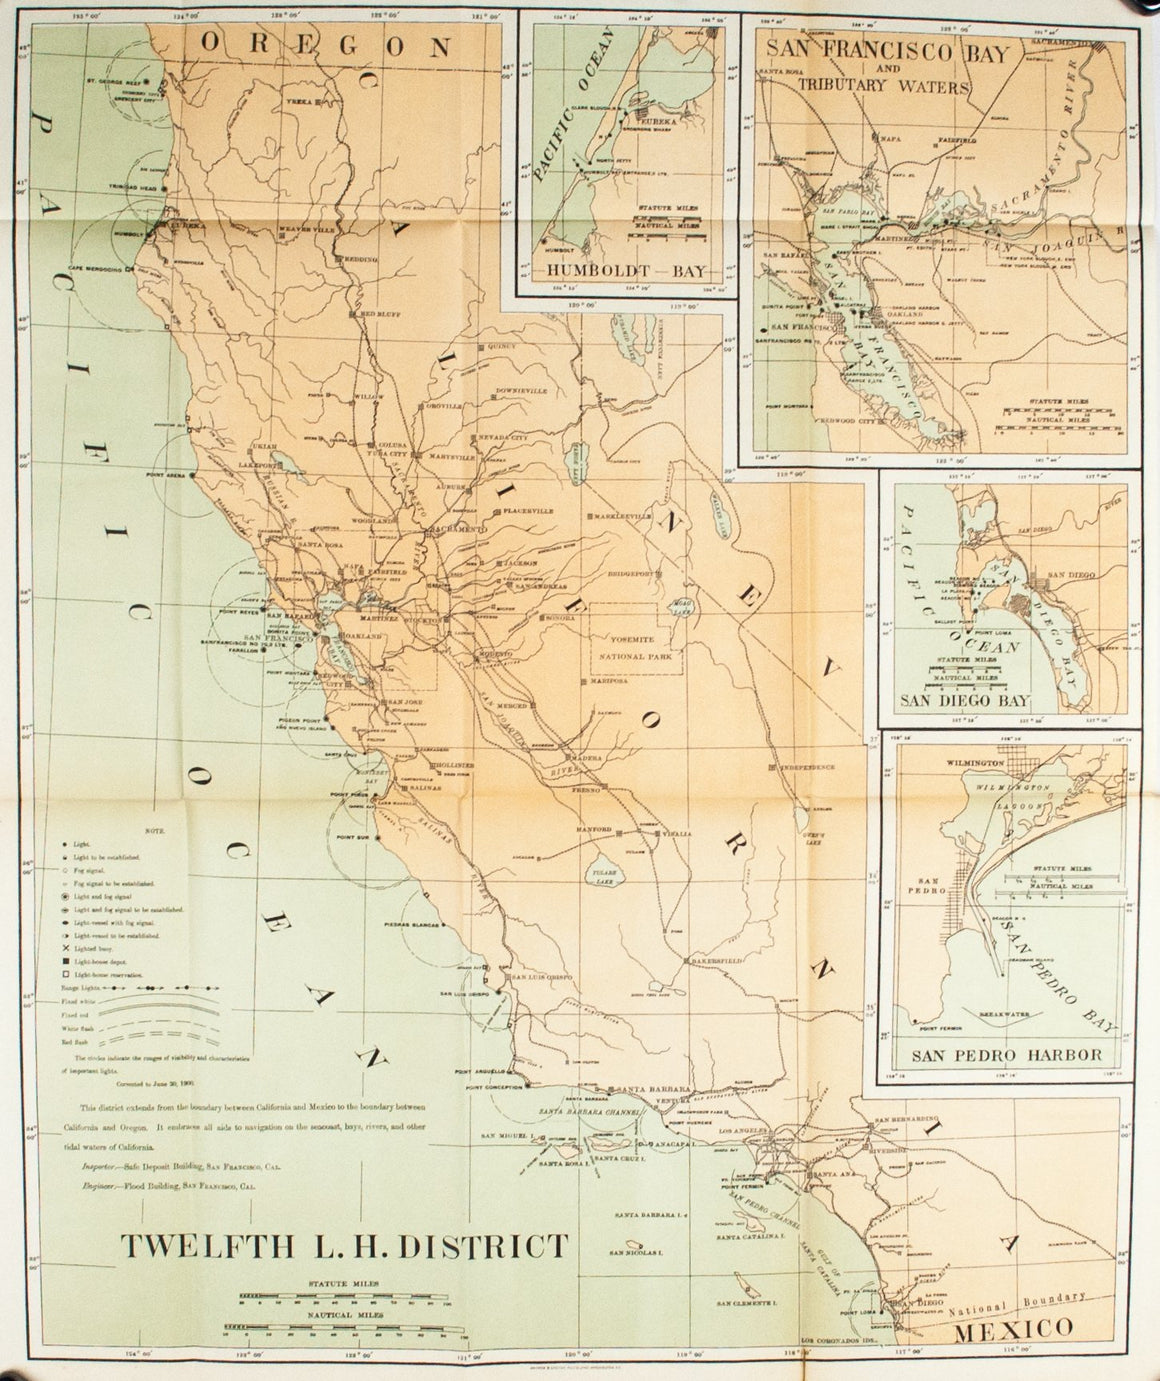 1900 Twelfth Lighthouse District - US Light-House Board